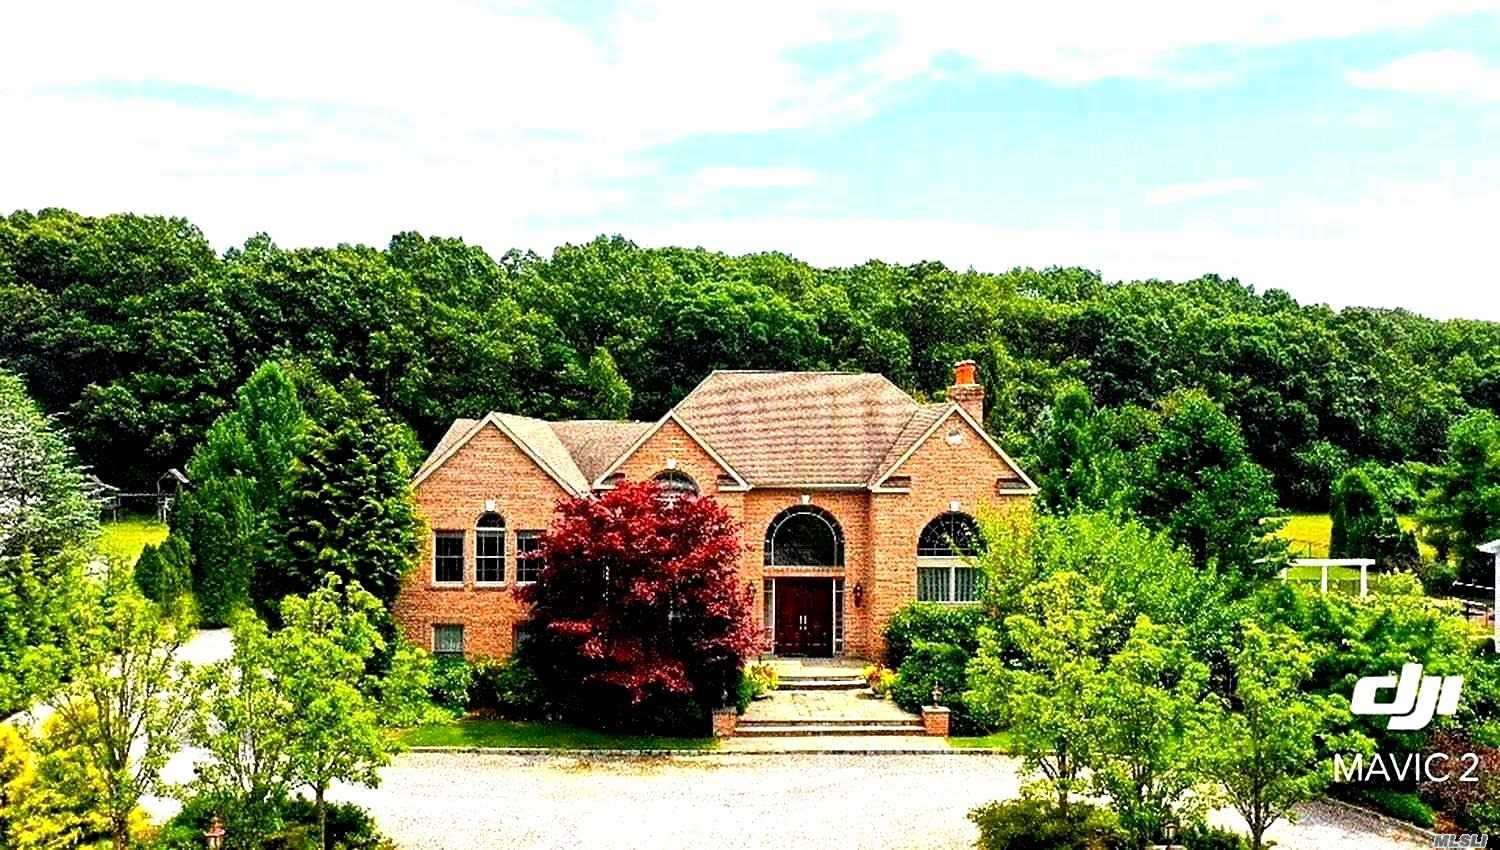 Exquisite 2 Story Grand Foyer Entrance Home On Premium Lot, Desirable Half Hollow Hills Sd. Vaulted & Coffered Ceilings Throughout. 6 Zns For Heat And A/C. Radiant Heat W/4 Zns. Ellliptical Sliders & French Doors. Sub Zero & Thermador Apls,  . Main Fl Has Wet Bar & Light Schemed Settings . Grand Master Br, Expanded Mstr Bth. 400 Amp Electric, 2 Hw Heaters/190 Gal.French Drains, 2nd Fl Lndry Rm, Salt Water Pool W/Jacuzzi & 3 Waterfalls. Too Many Upgrades To Mention, Call 4 Details!